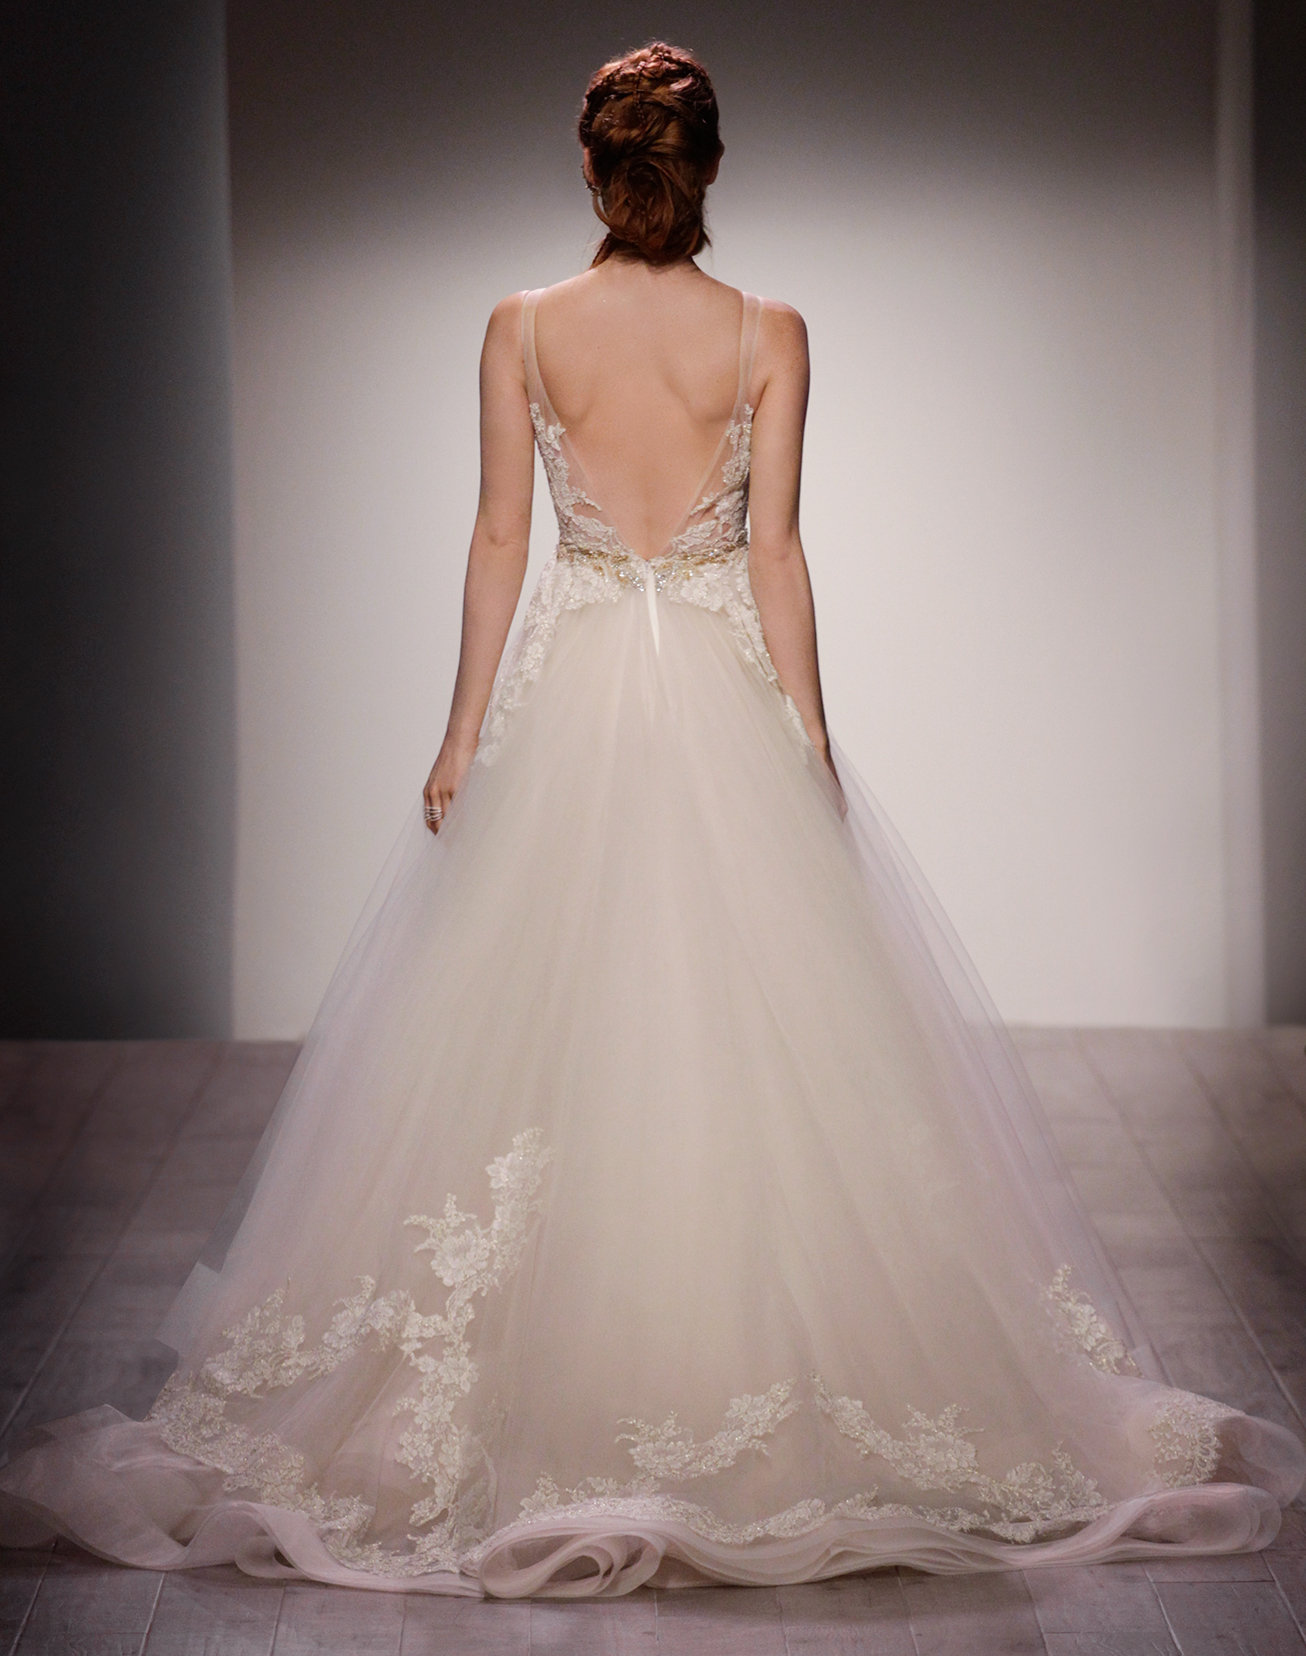 Bridal gowns and wedding dresses by jlm couture style 3607 style 3607 back view junglespirit Image collections